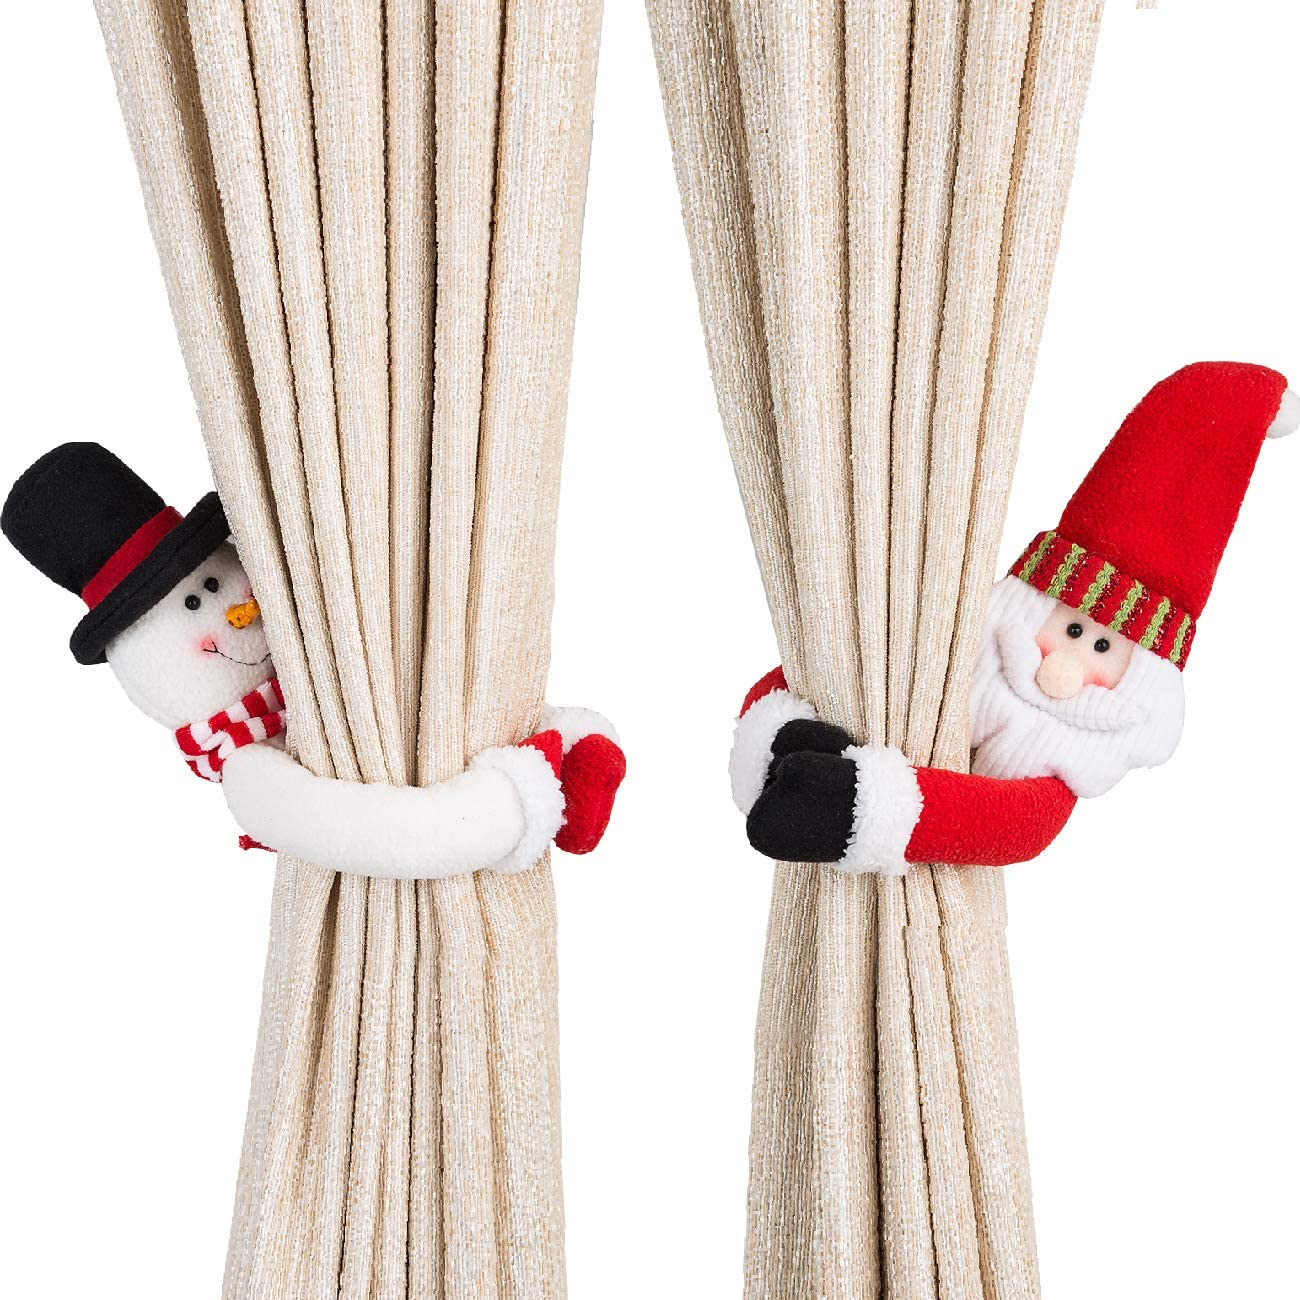 Ogrmar 2 Pack Christmas Curtain Buckle Doll Santa & Snowman Creative Curtain Tieback Hold Back Fastener,Christmas Wine Bottle Topper for Xmas Holiday Home Window Decorations